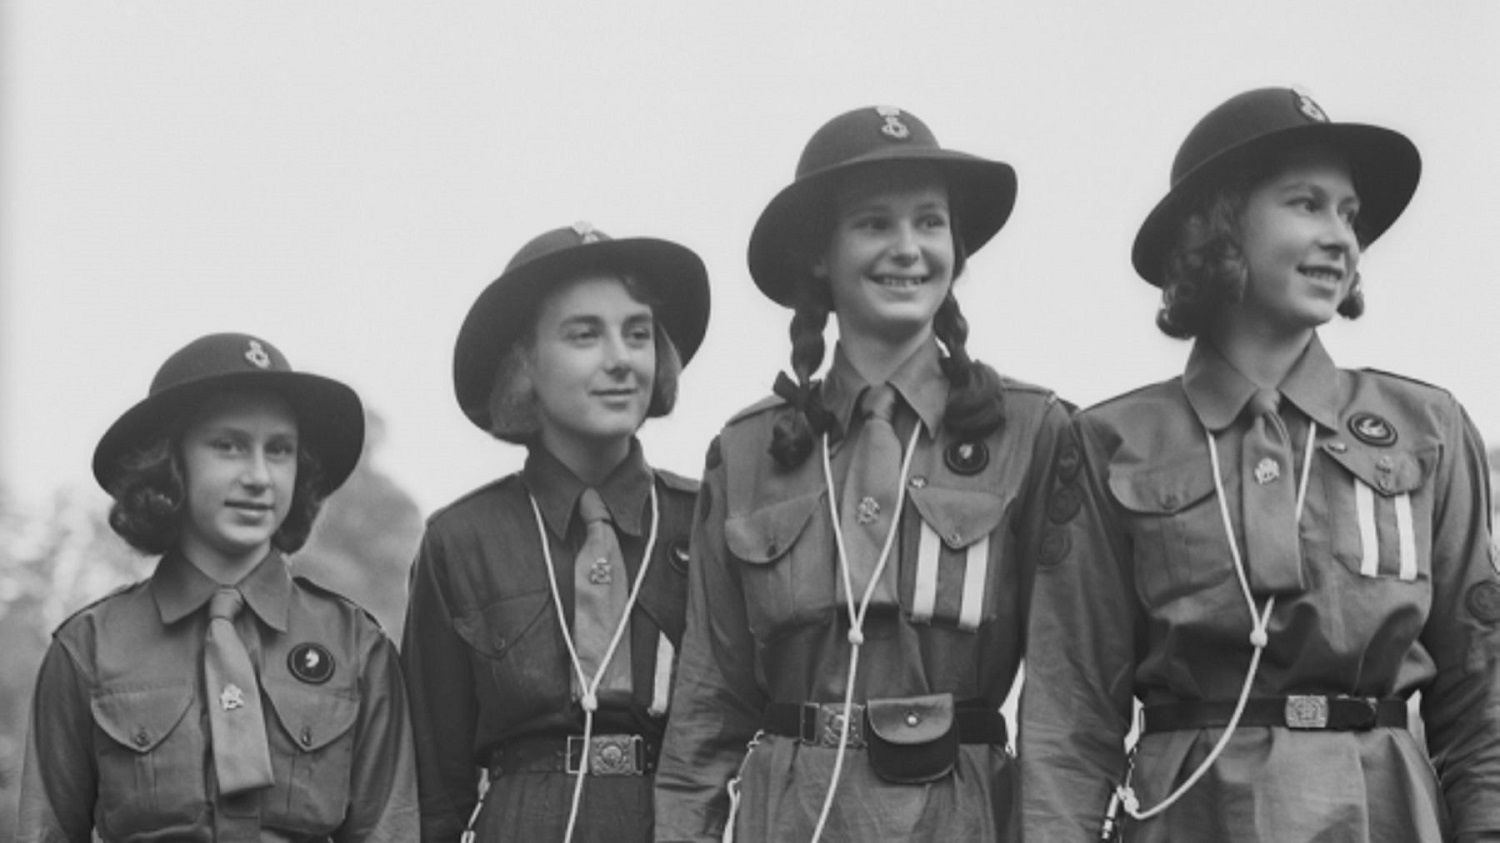 ~Girl Guides in vintage uniform